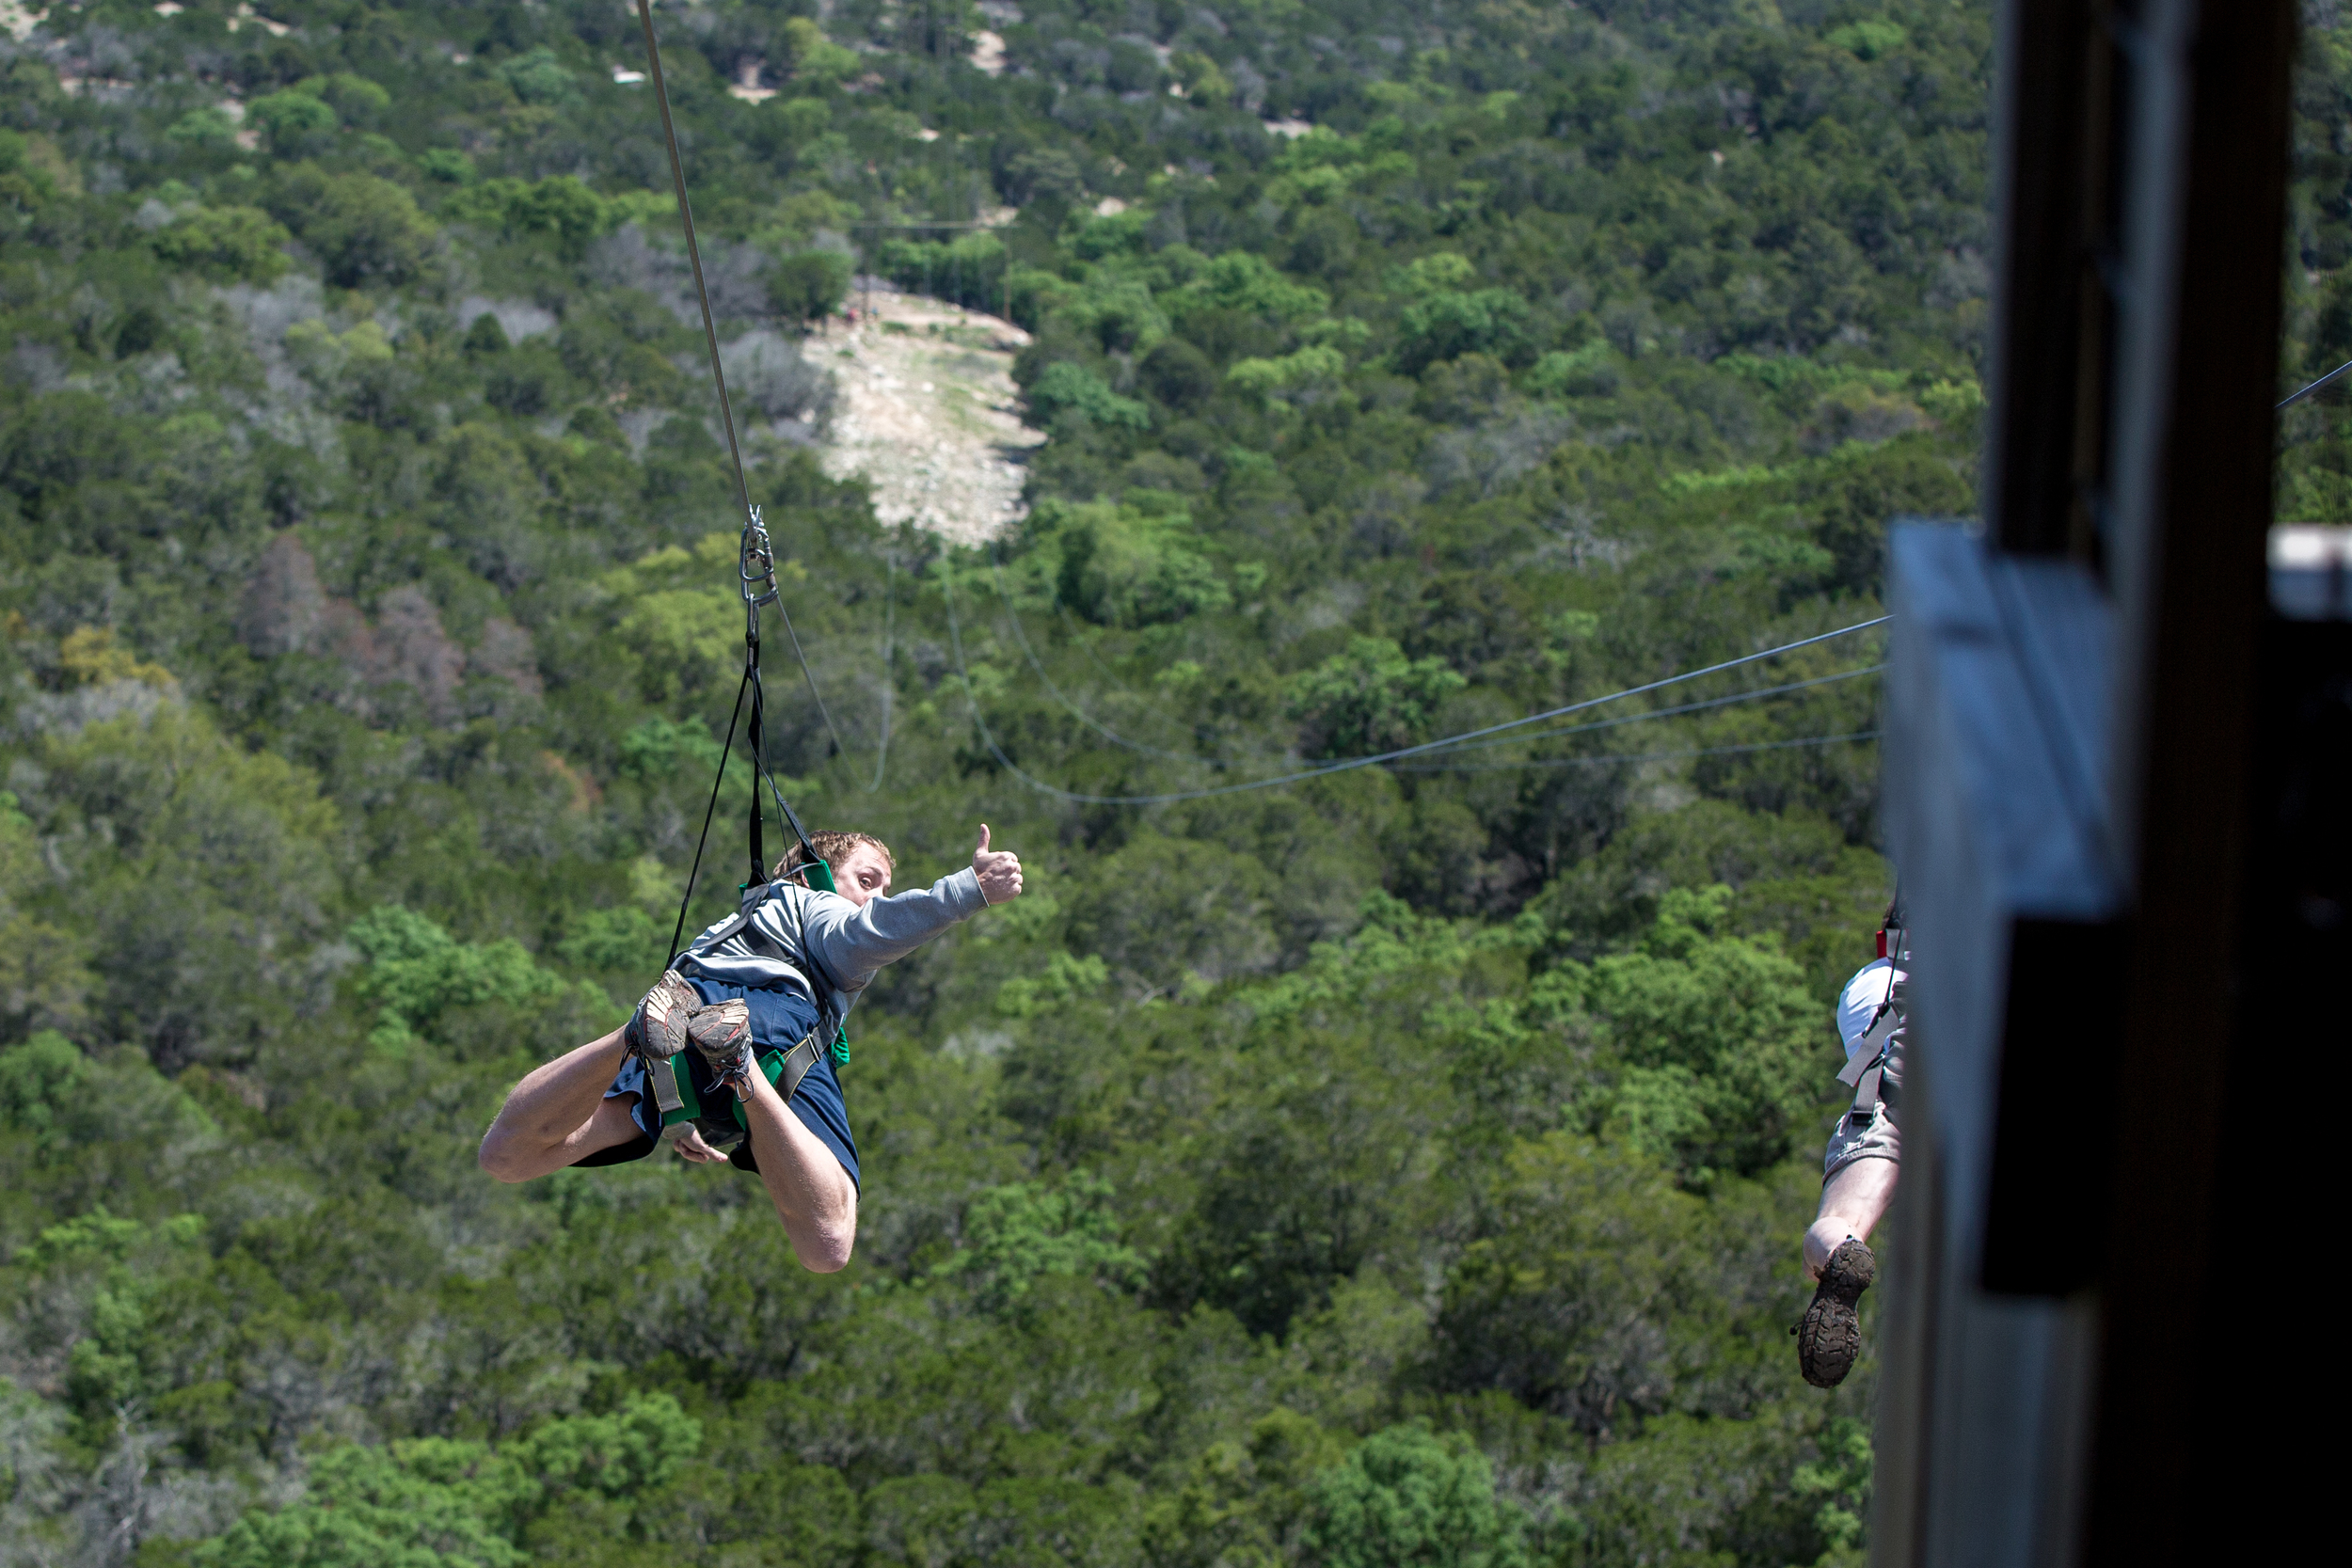 Camp Eagle in Rocksprings, TX is now home to the longest zipline in Texas, the Zipline3000!!! 3000 feet, 50mph!   Click on the image above to watch the video!